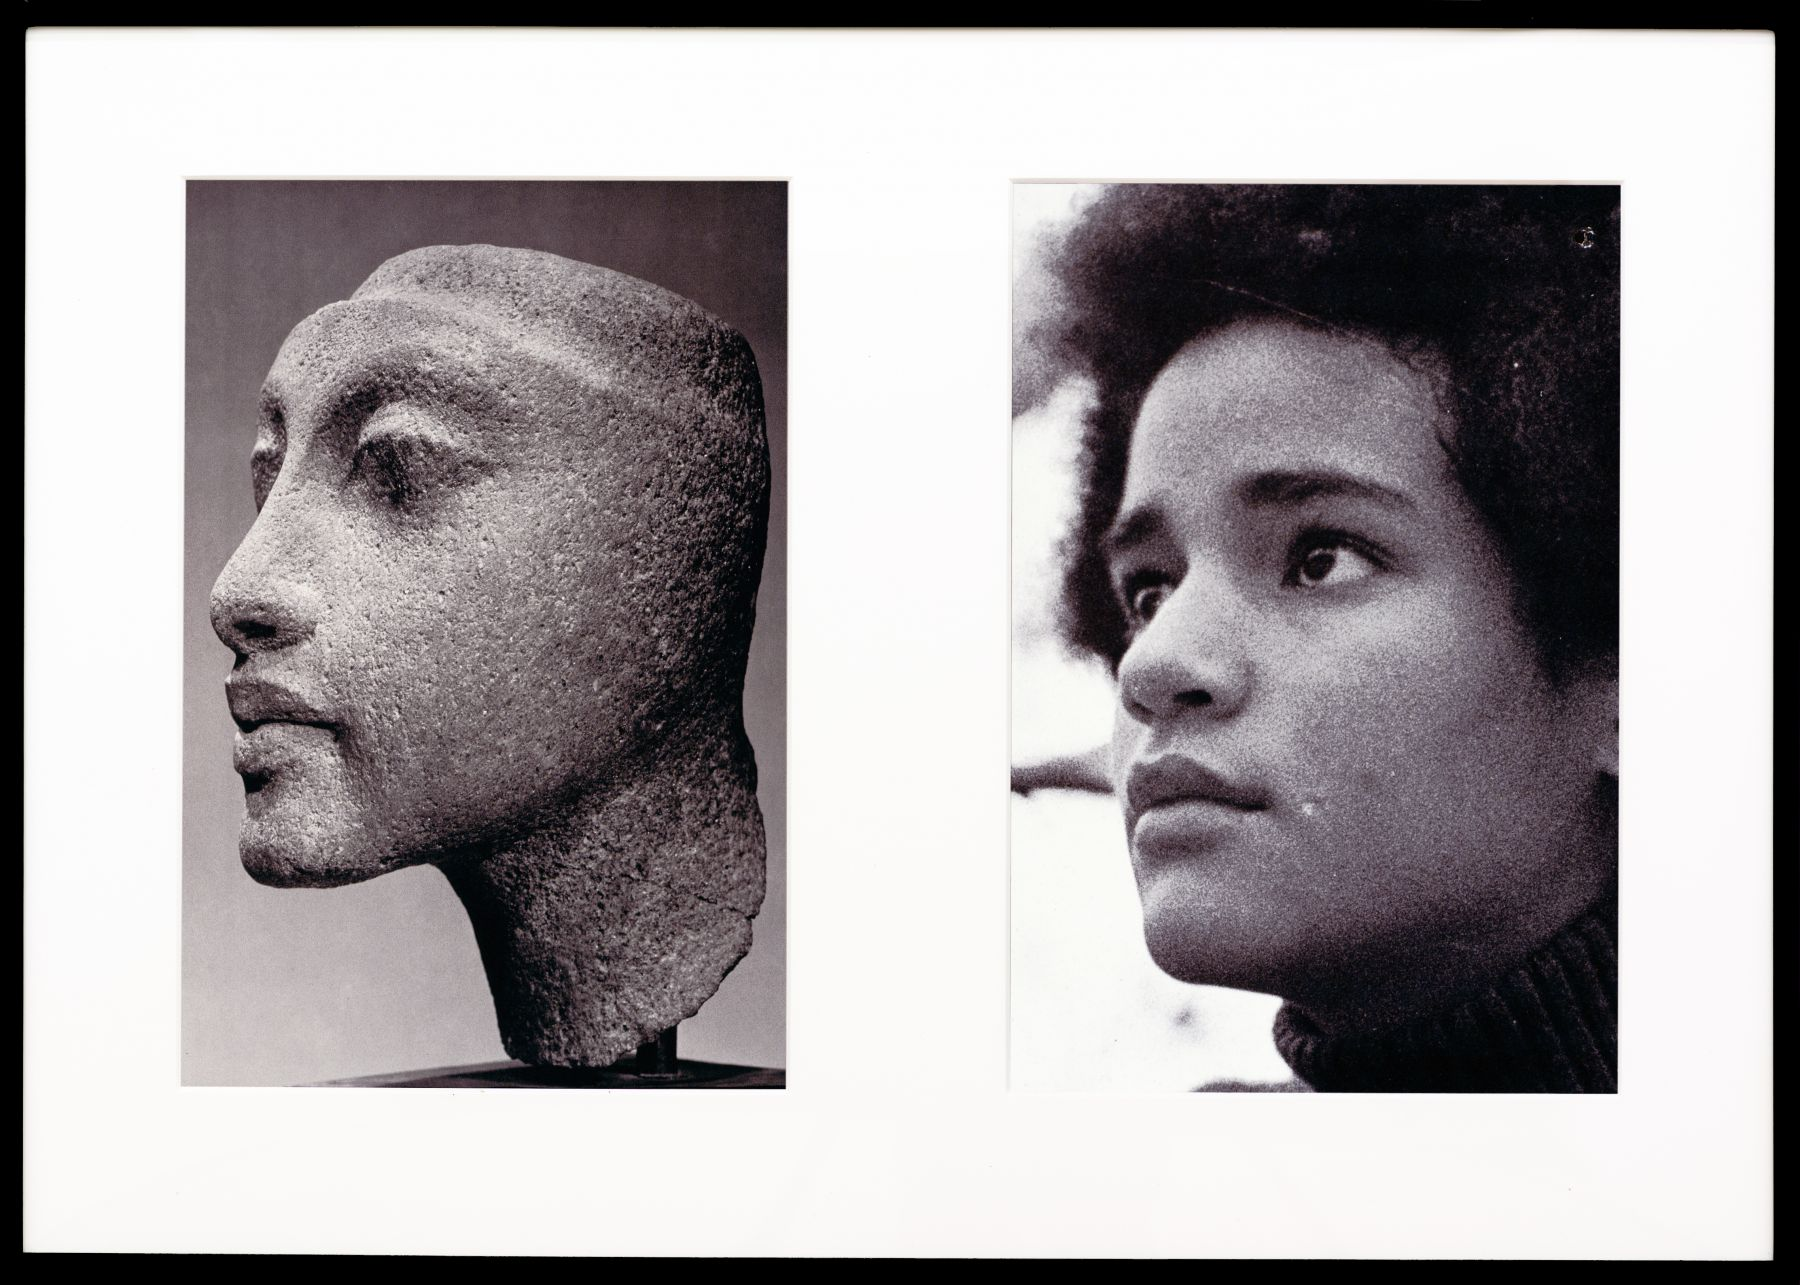 Miscegenated Family Album (Sisters III), L: Nefertiti's daughter, Maketaten; R: Devonia's daughter, Kimberley, 1980/1994, Cibachrome print, 26h x 37w in (66.04h x 93.98w cm)